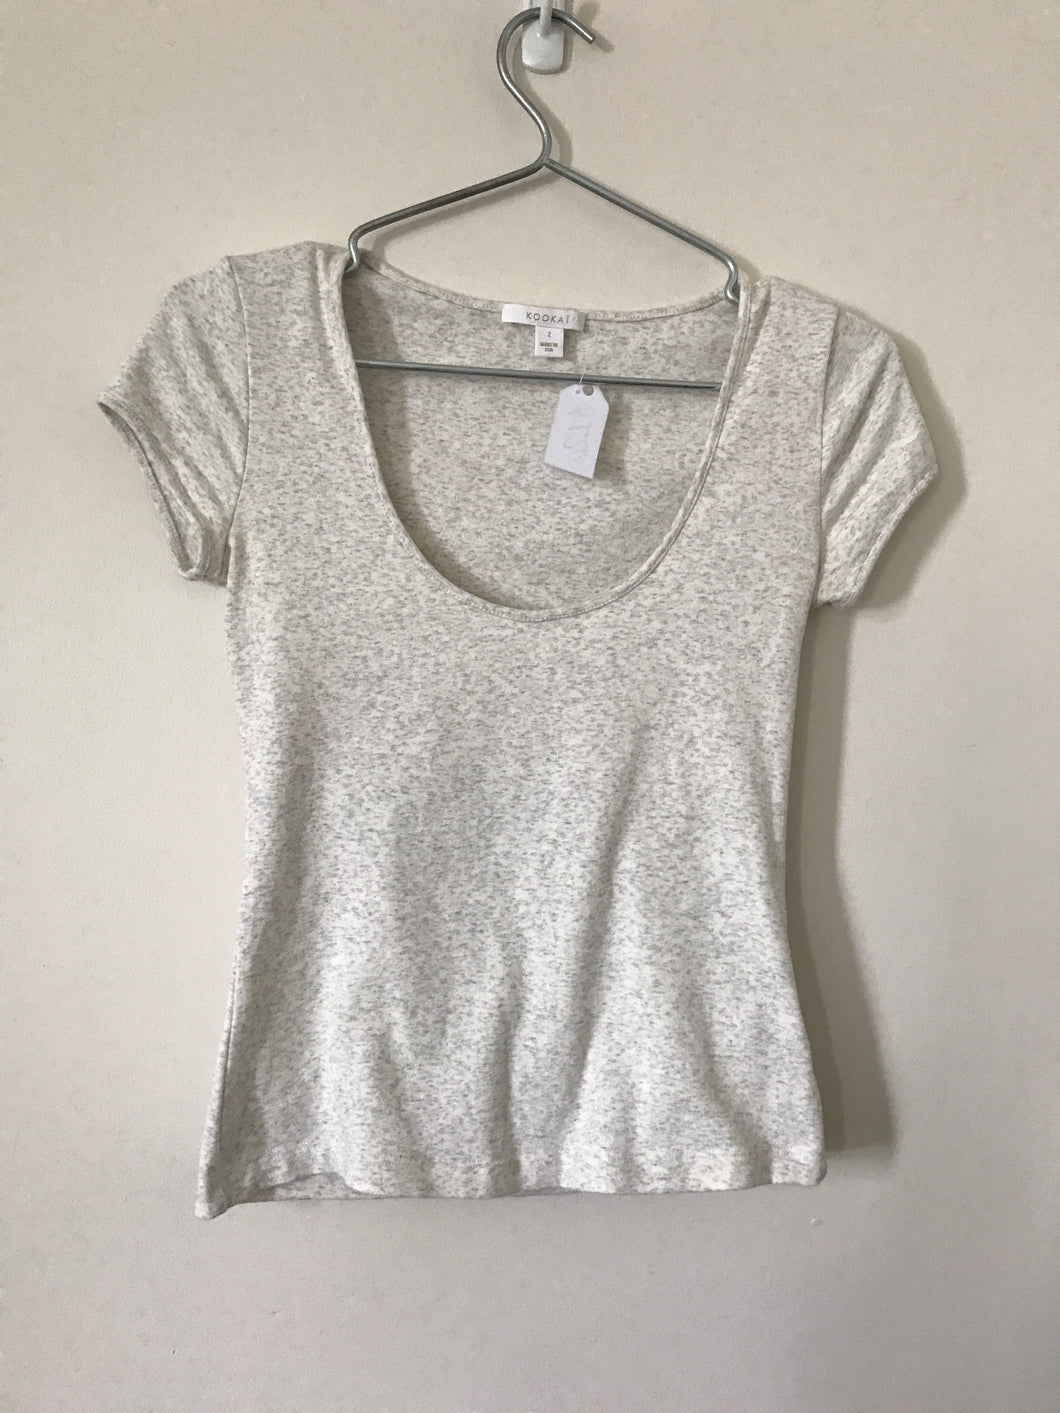 Kookai cream and grey speck t-shirt Size 2 (estimated 6)